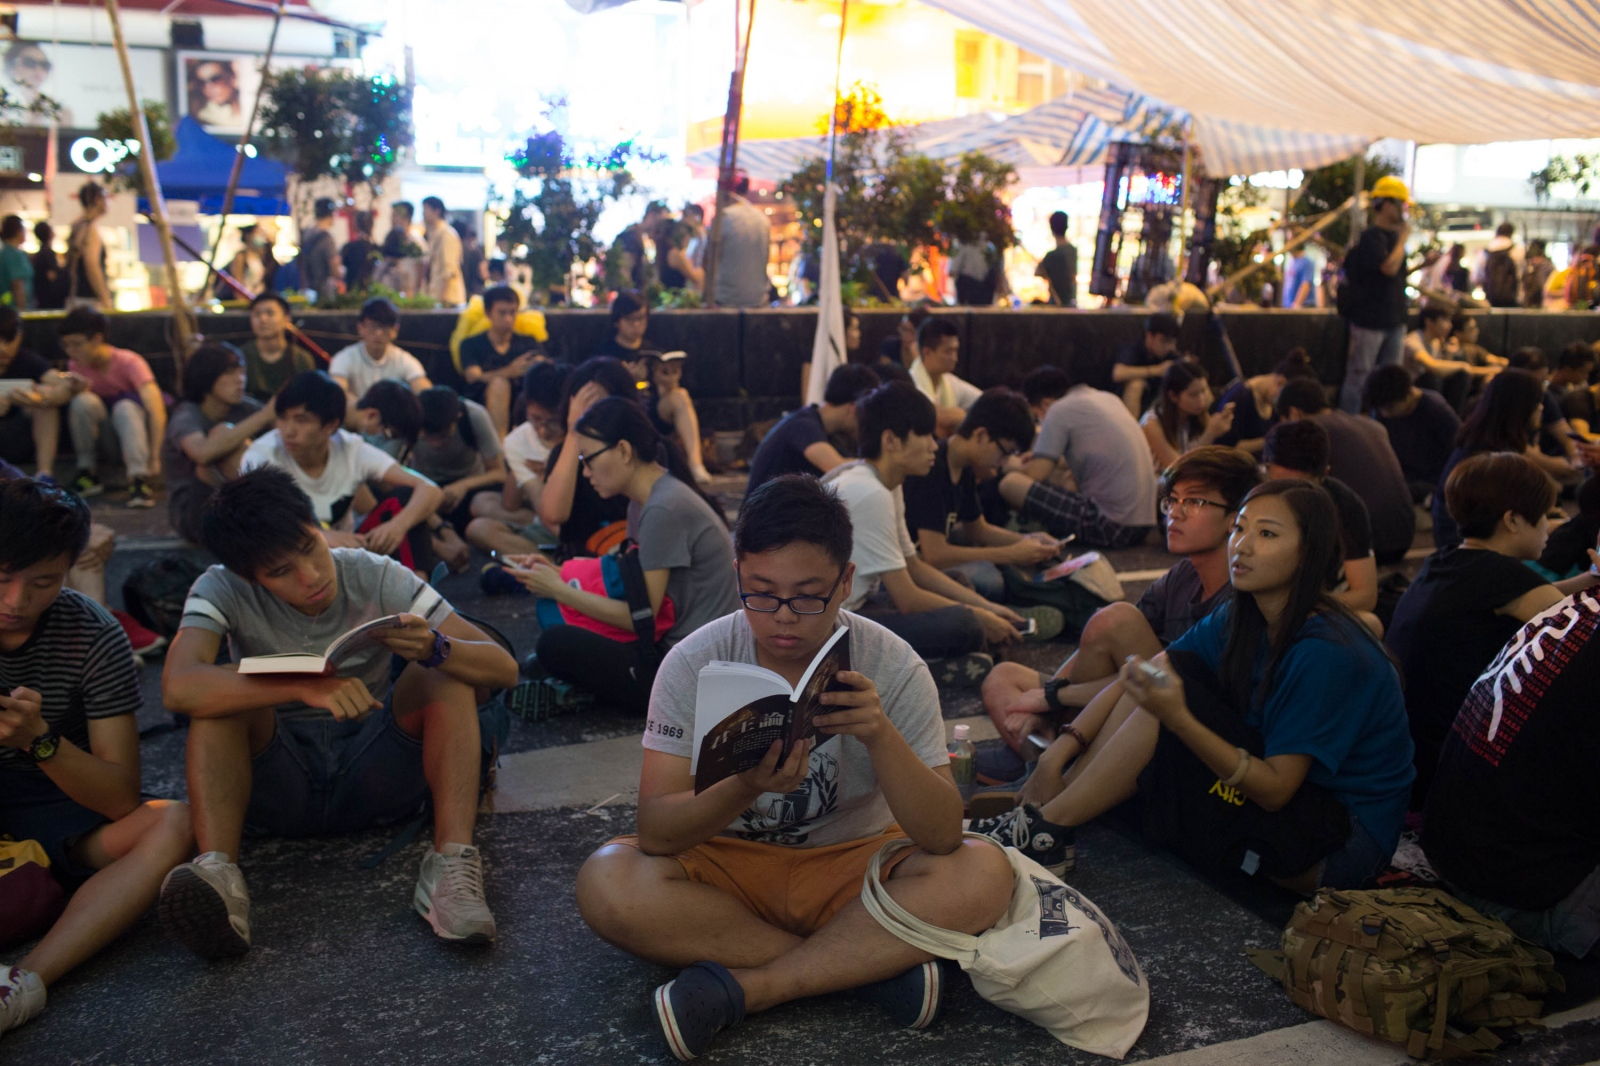 Students gather under makeshift tents to study and read during a protest sit in, in Mong Kok, Hong Kong, on October 4, 2014.